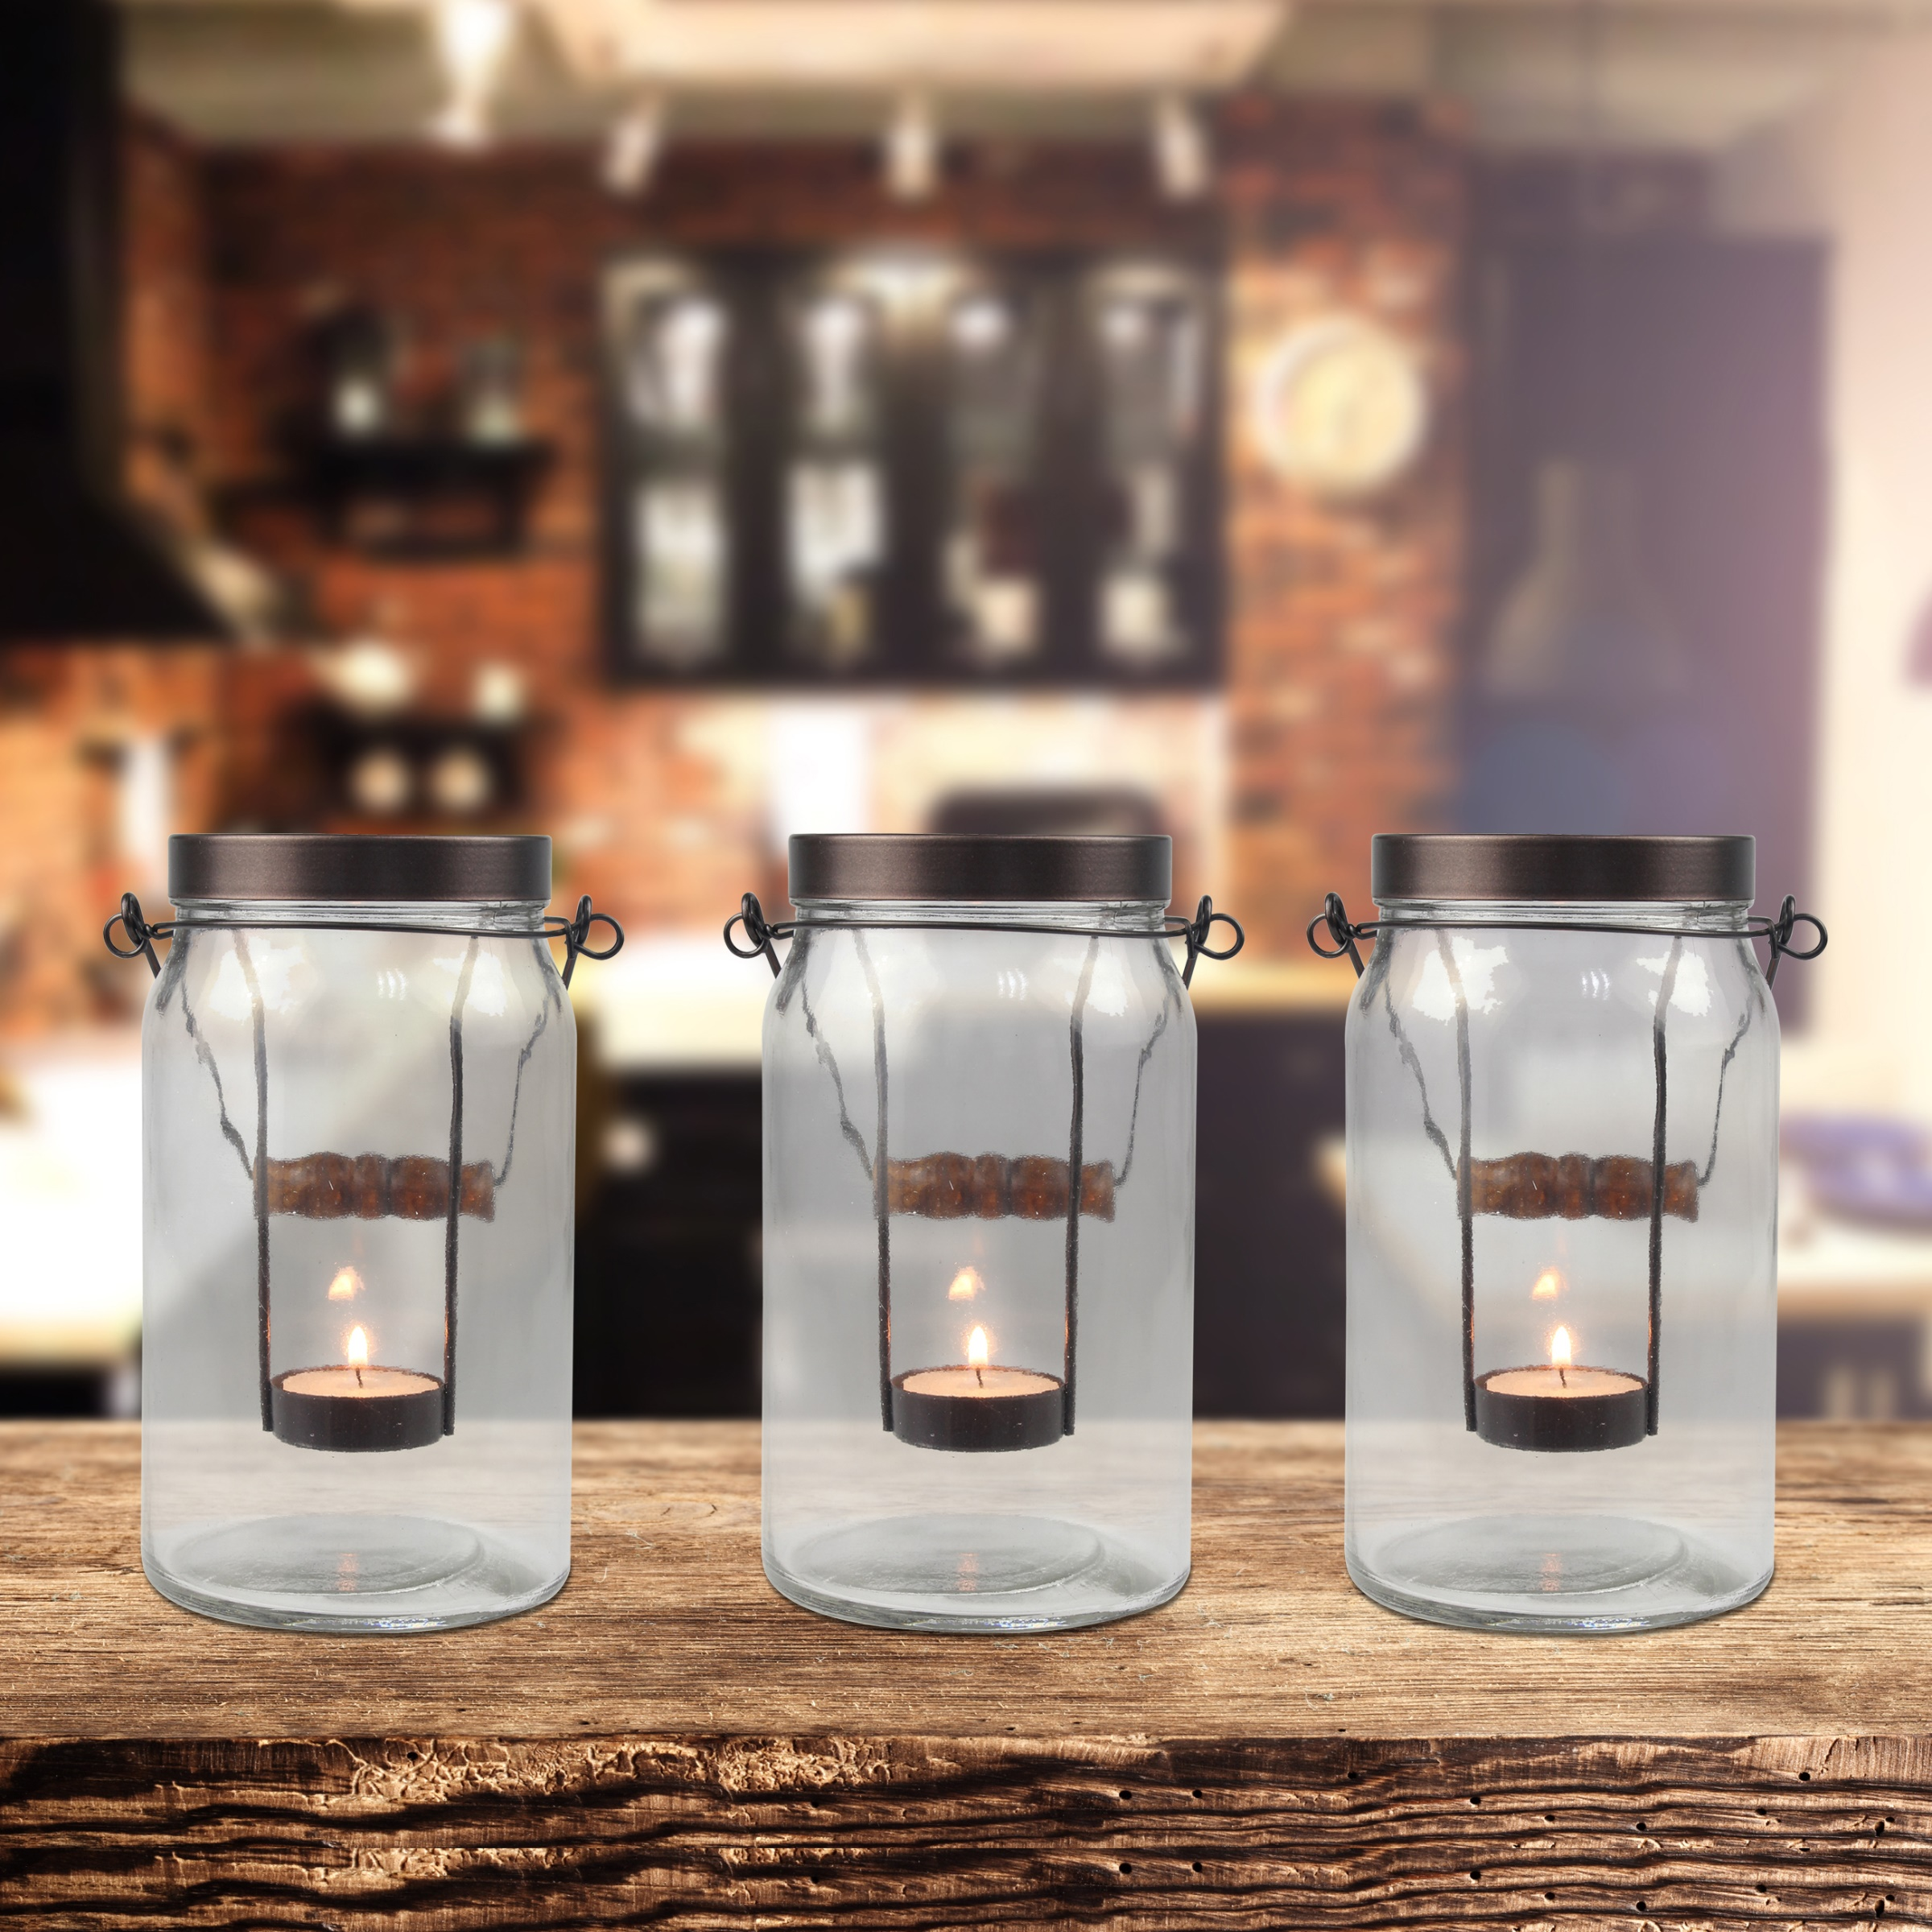 Better Homes and Gardens Jar Tealight Candle Holders, 3-Pack by WAL-MART STORES INC